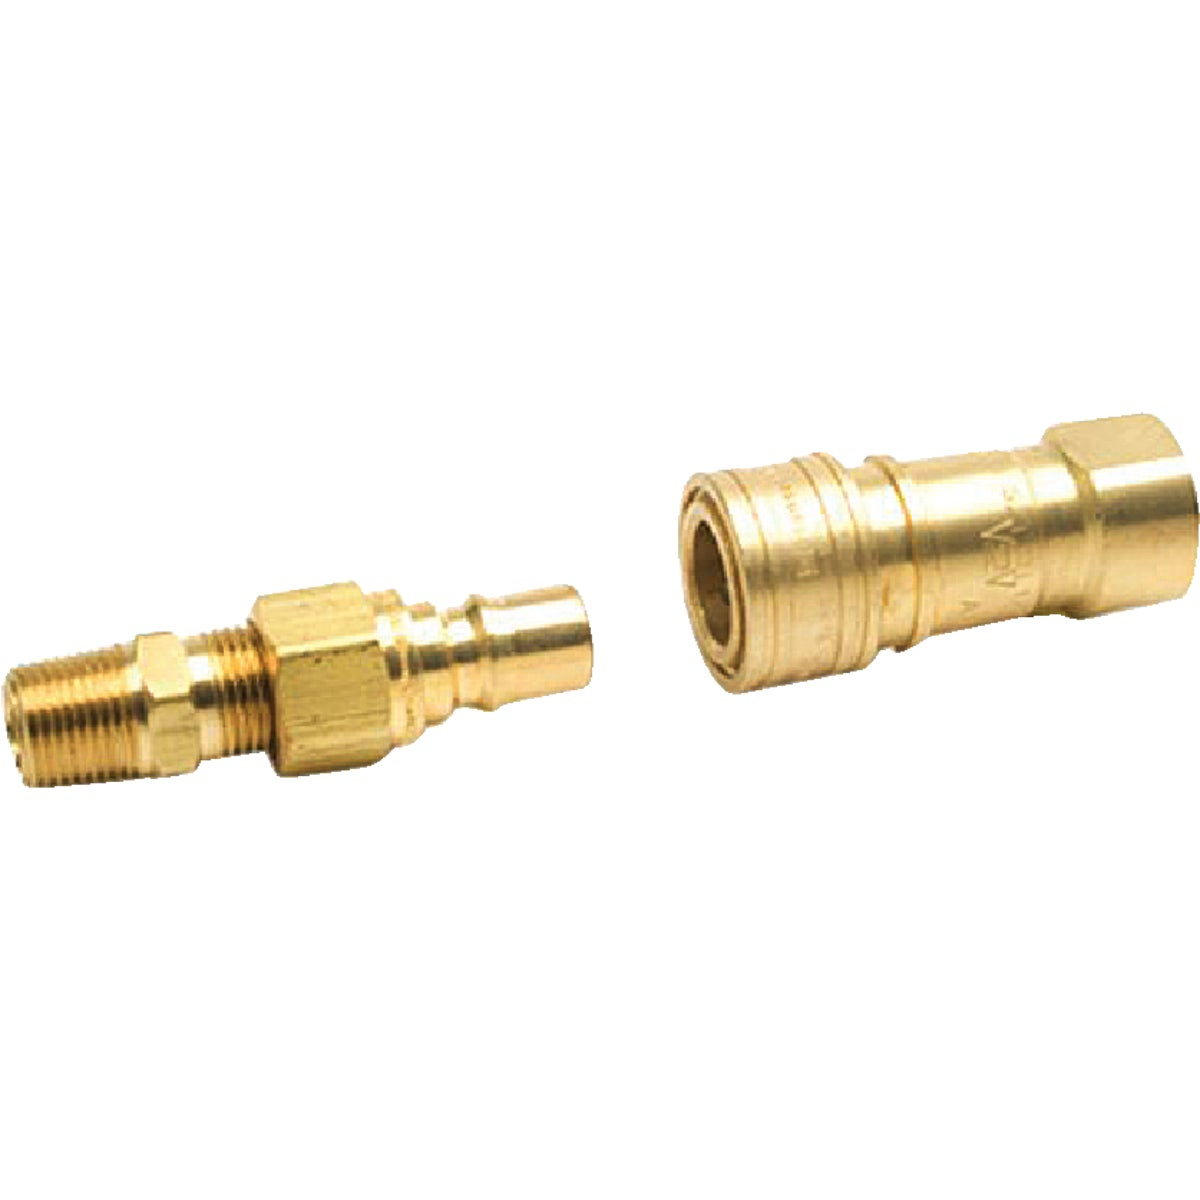 "3/8"" GAS CONNECTOR"